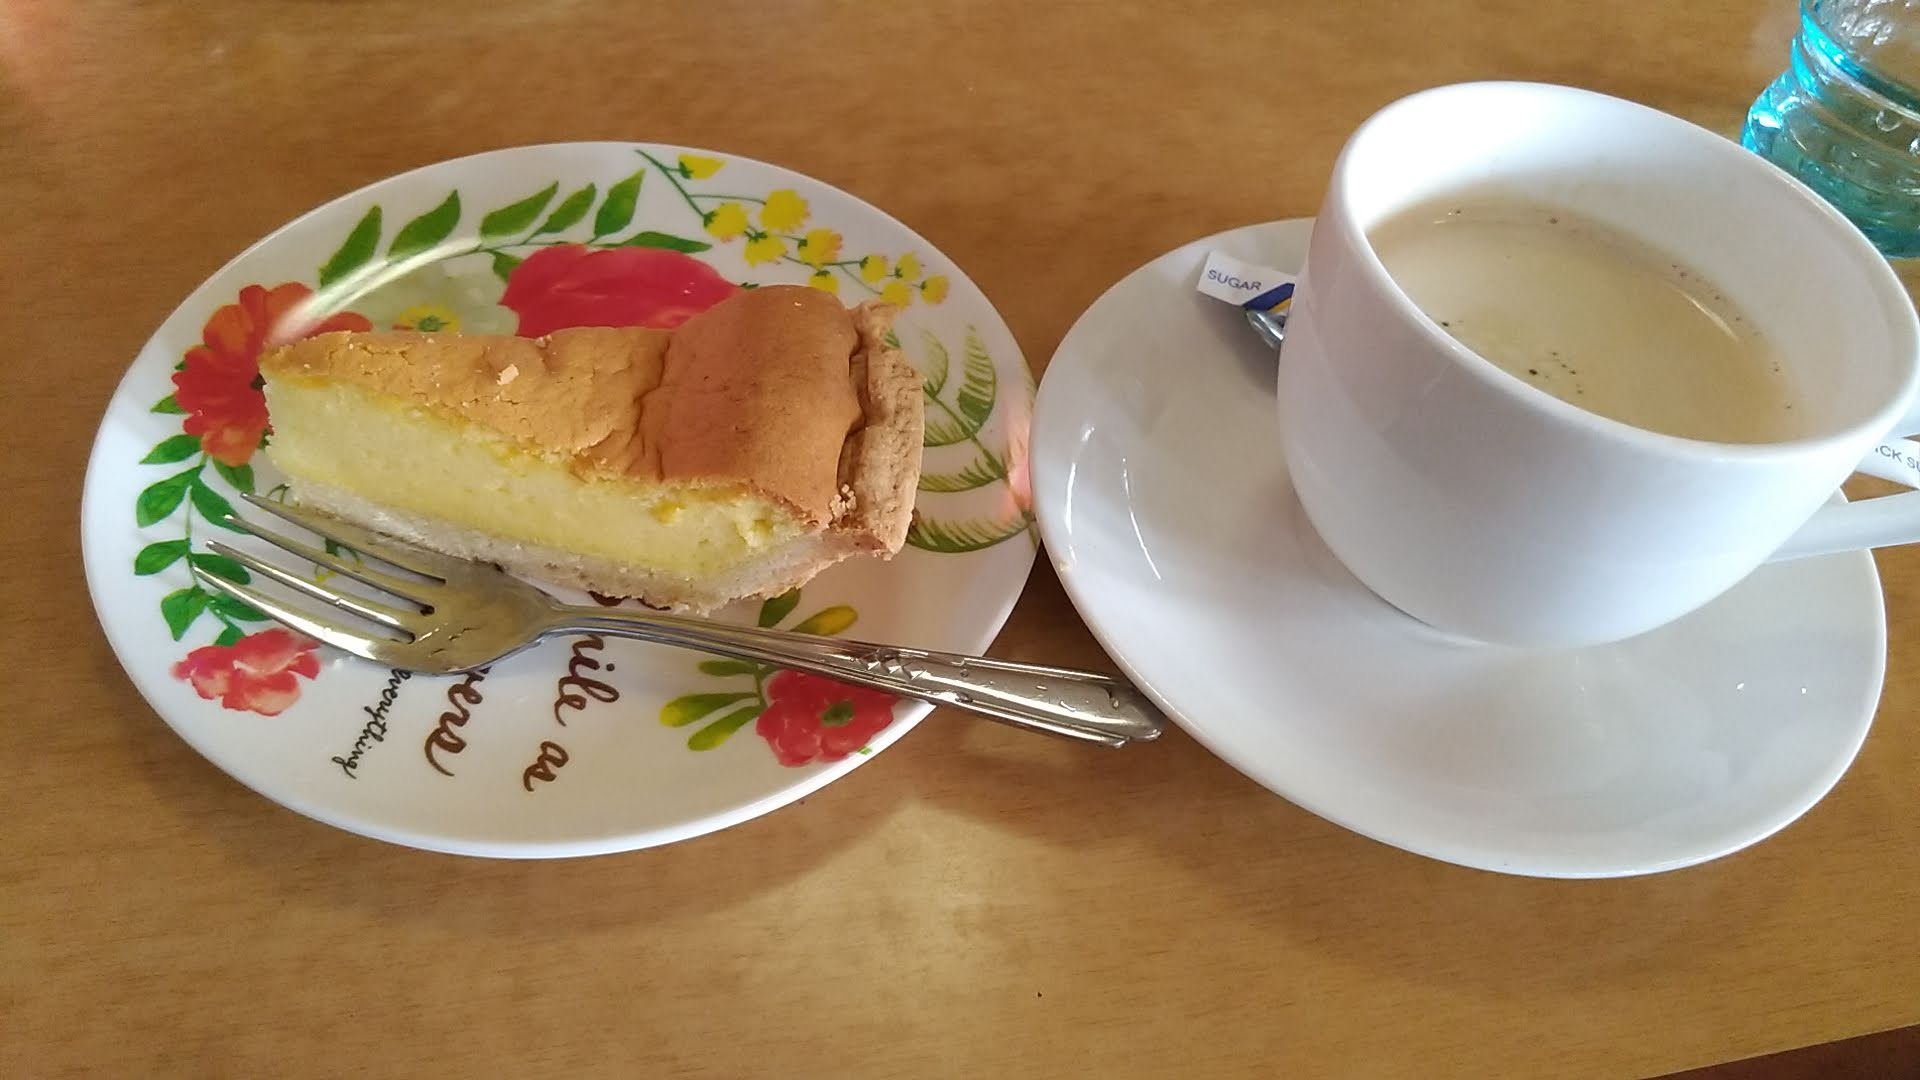 delicious homemade pie and coffee after meals